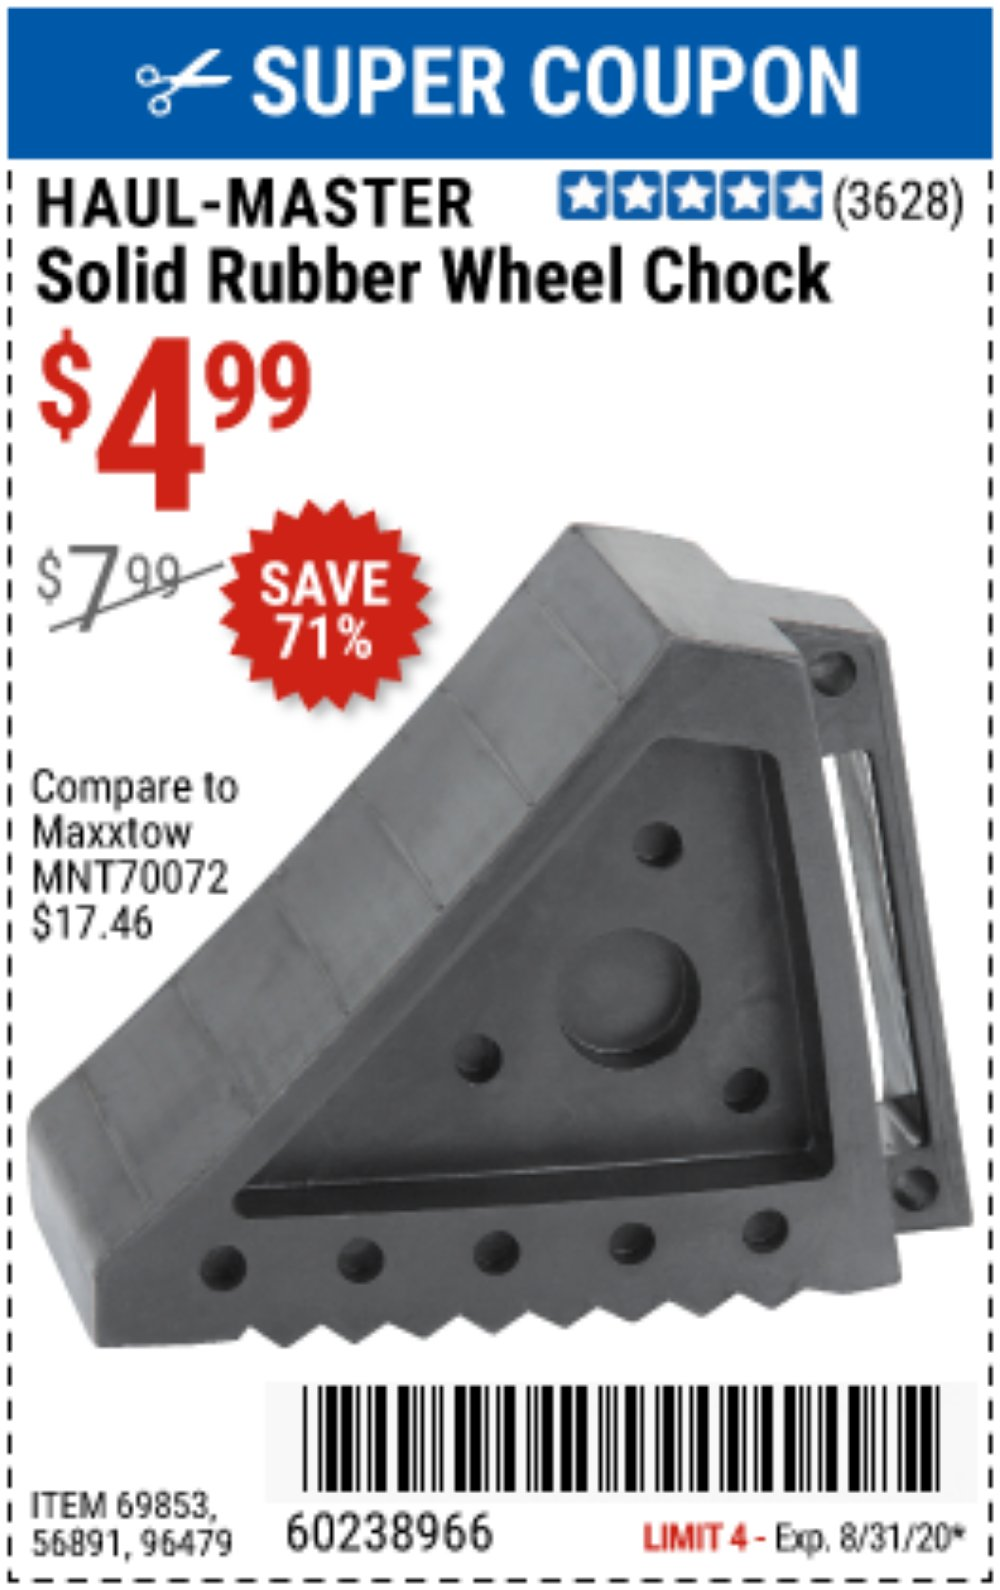 Harbor Freight Coupon, HF Coupons - Solid Rubber Wheel Chock